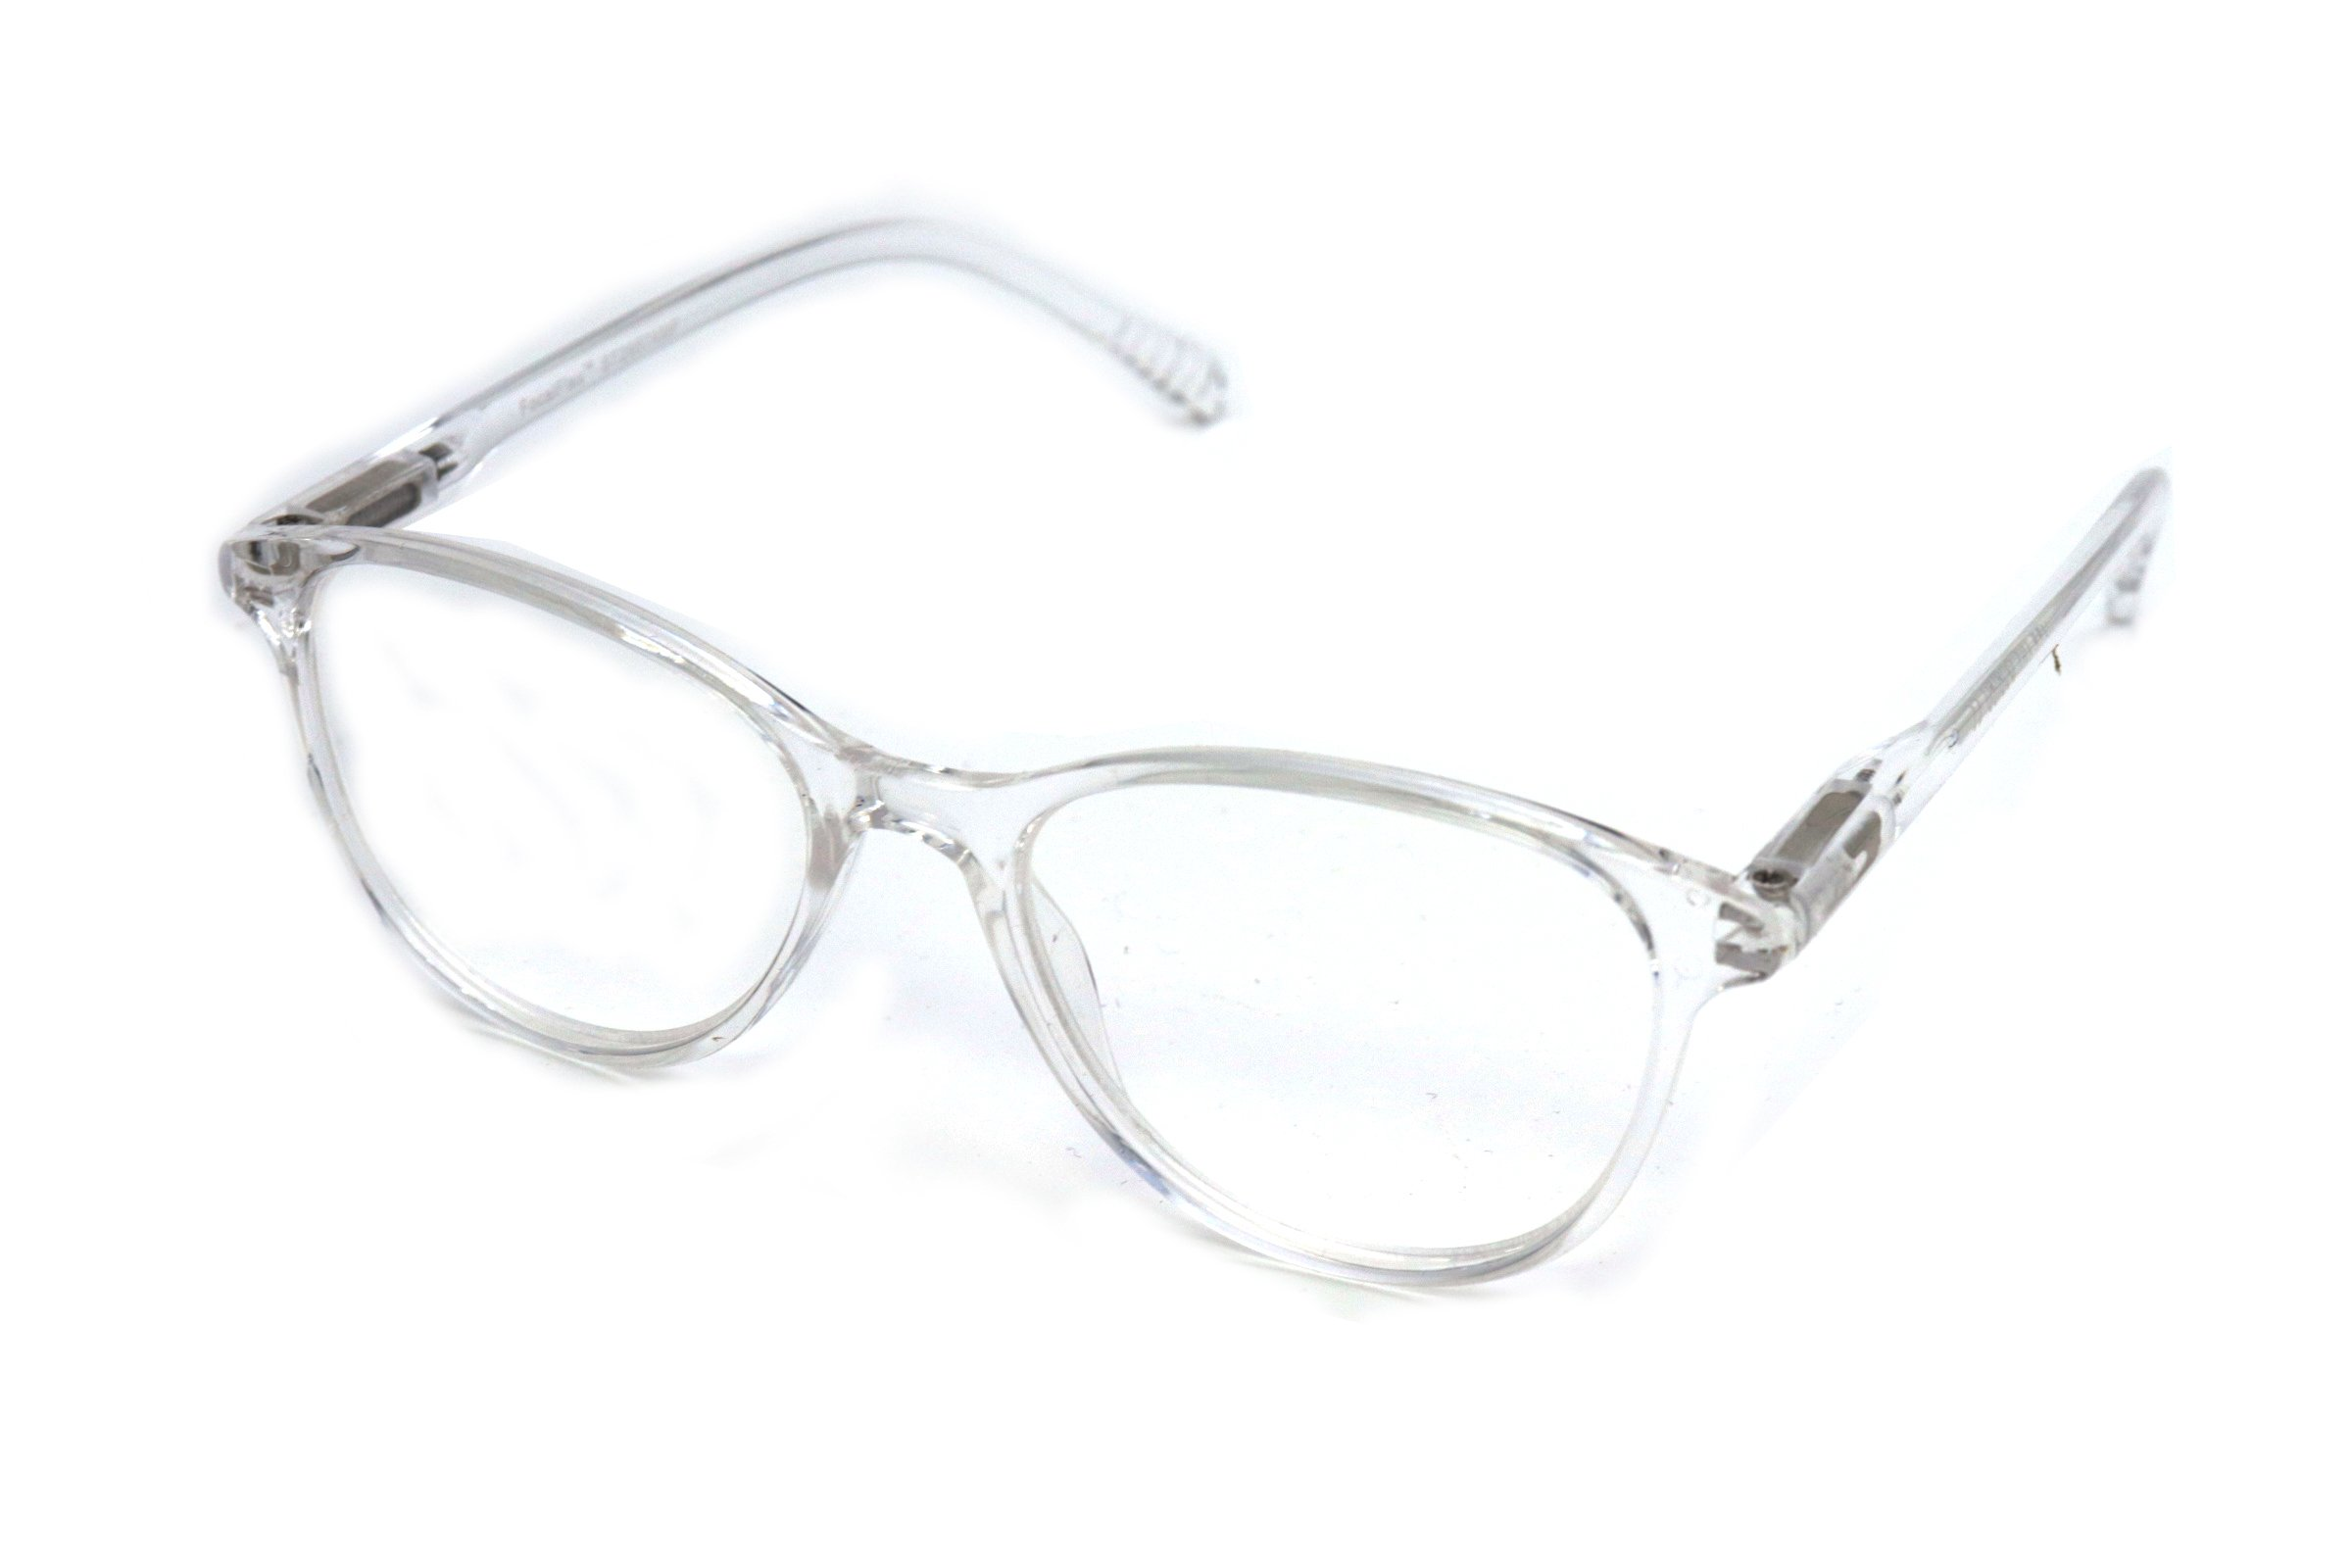 ColorViper Multifocal Progressive Computer Lens Multiple Strengths in 1 Reader Allow Switch Free Multitasking (2957 transparent clear, 2.00)